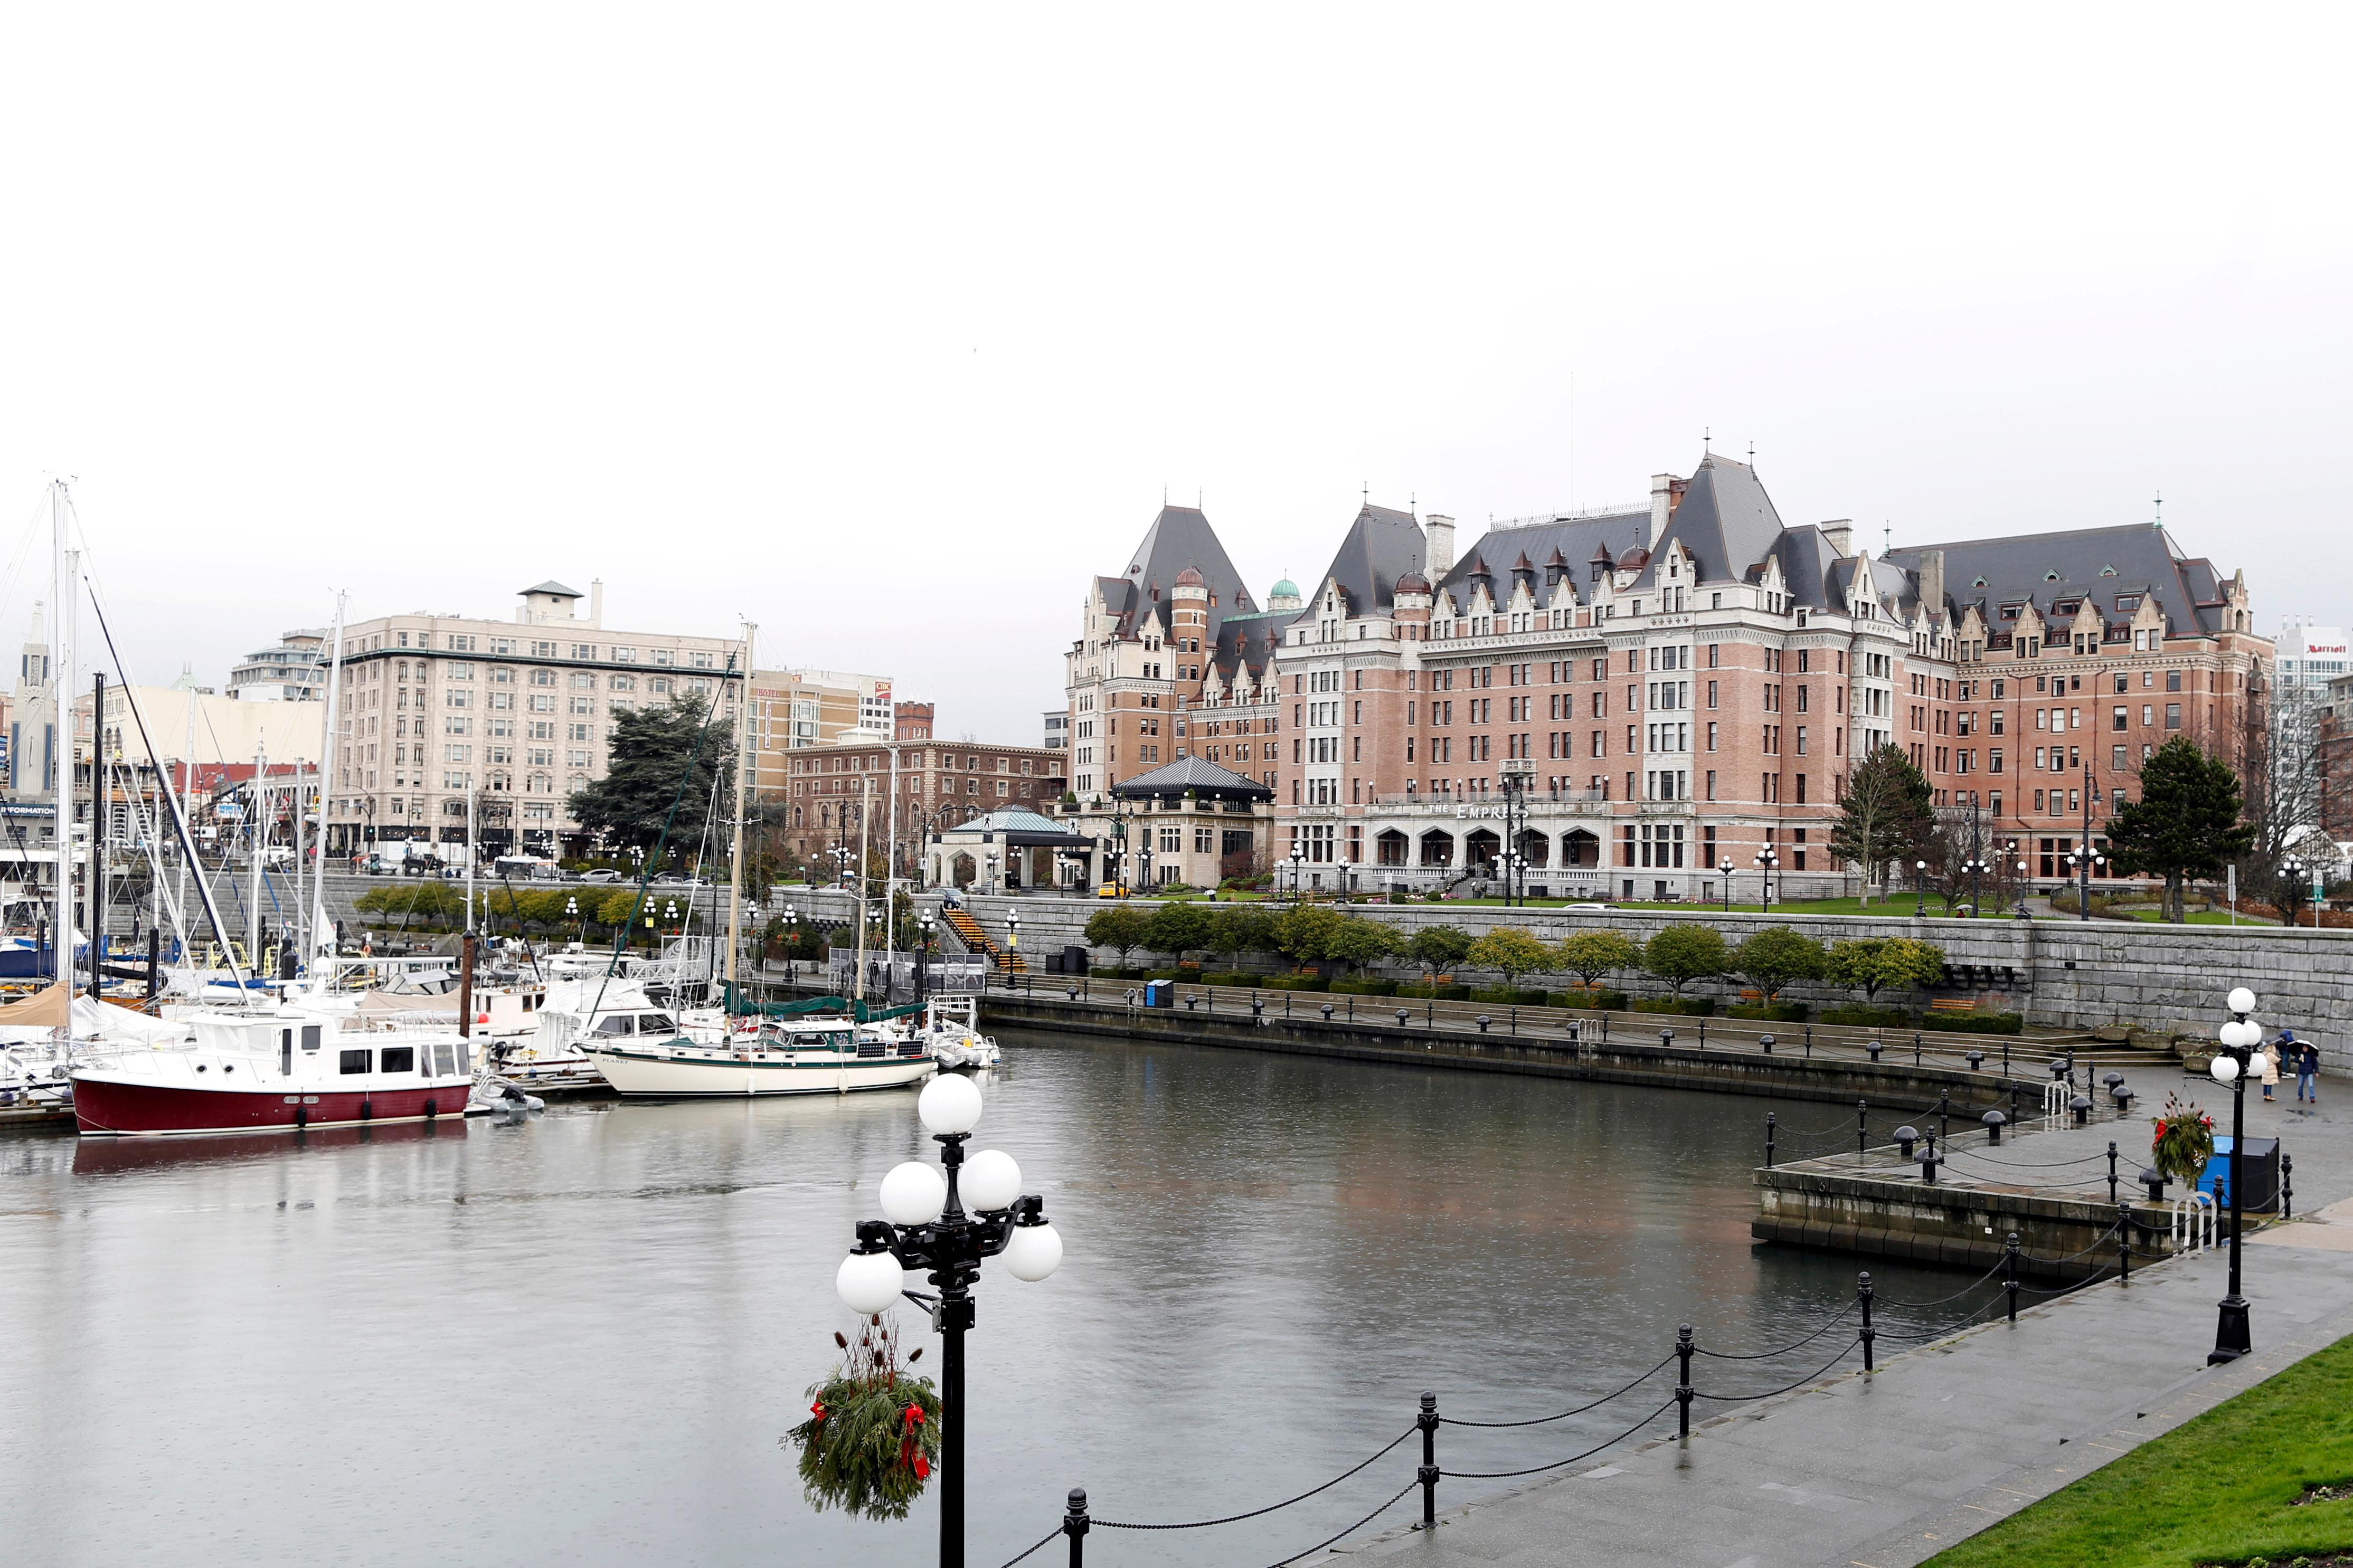 The Fairmont Empress Hotel is seen on the shore of the city's Inner Harbour in Victoria